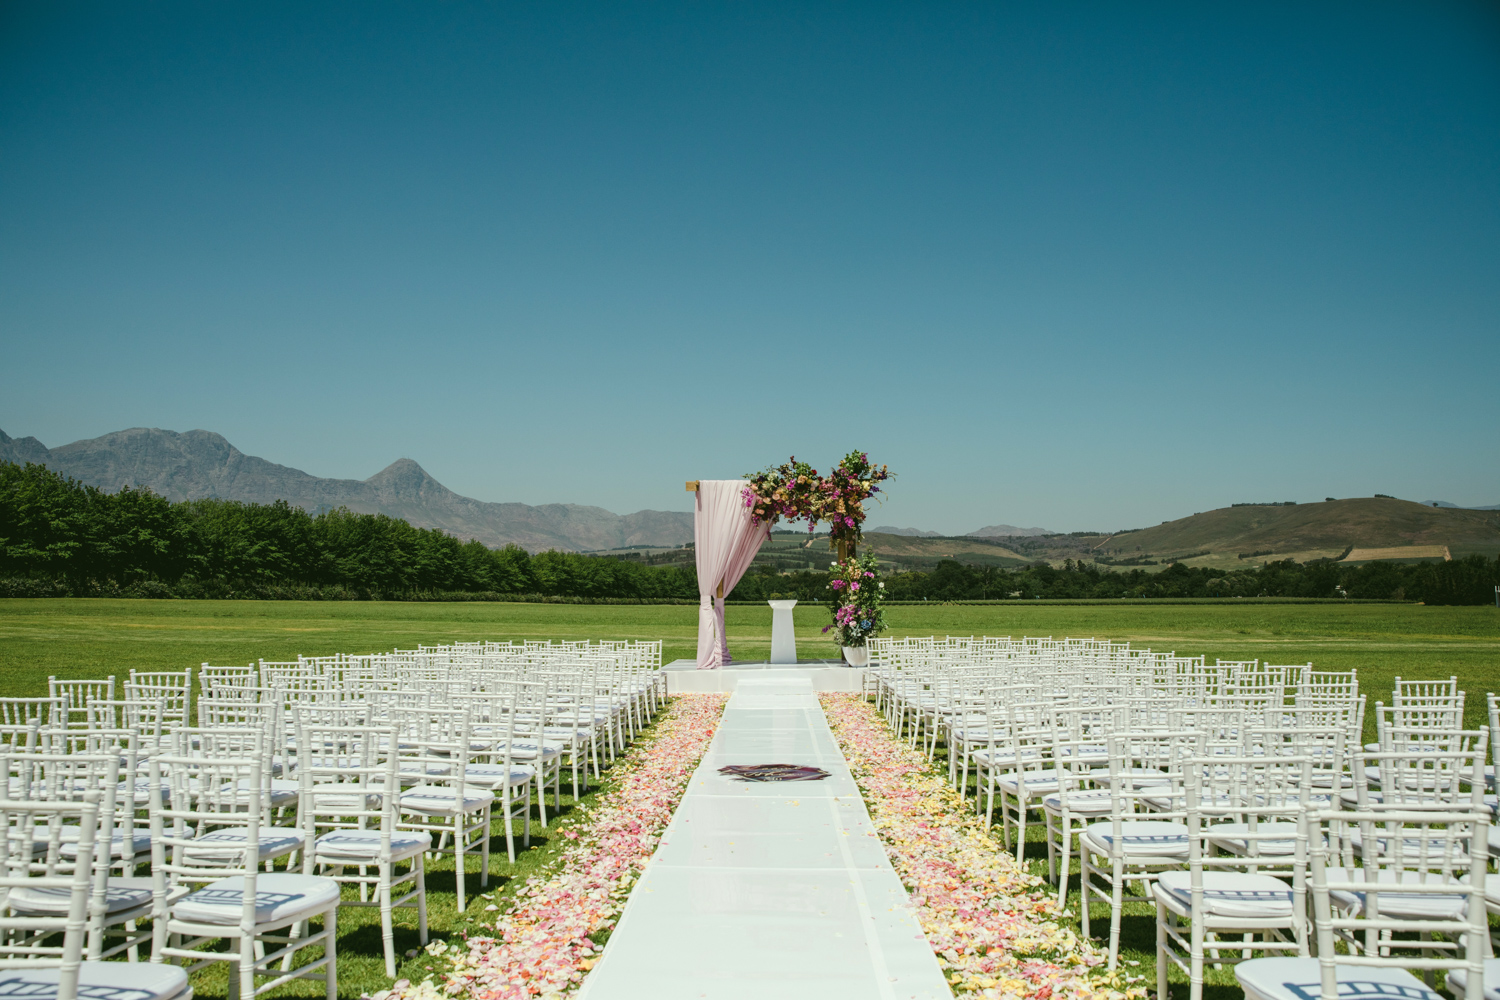 a wedding ceremony on the Lourensford wine estate, with white chairs with pink rose petals and an arch.